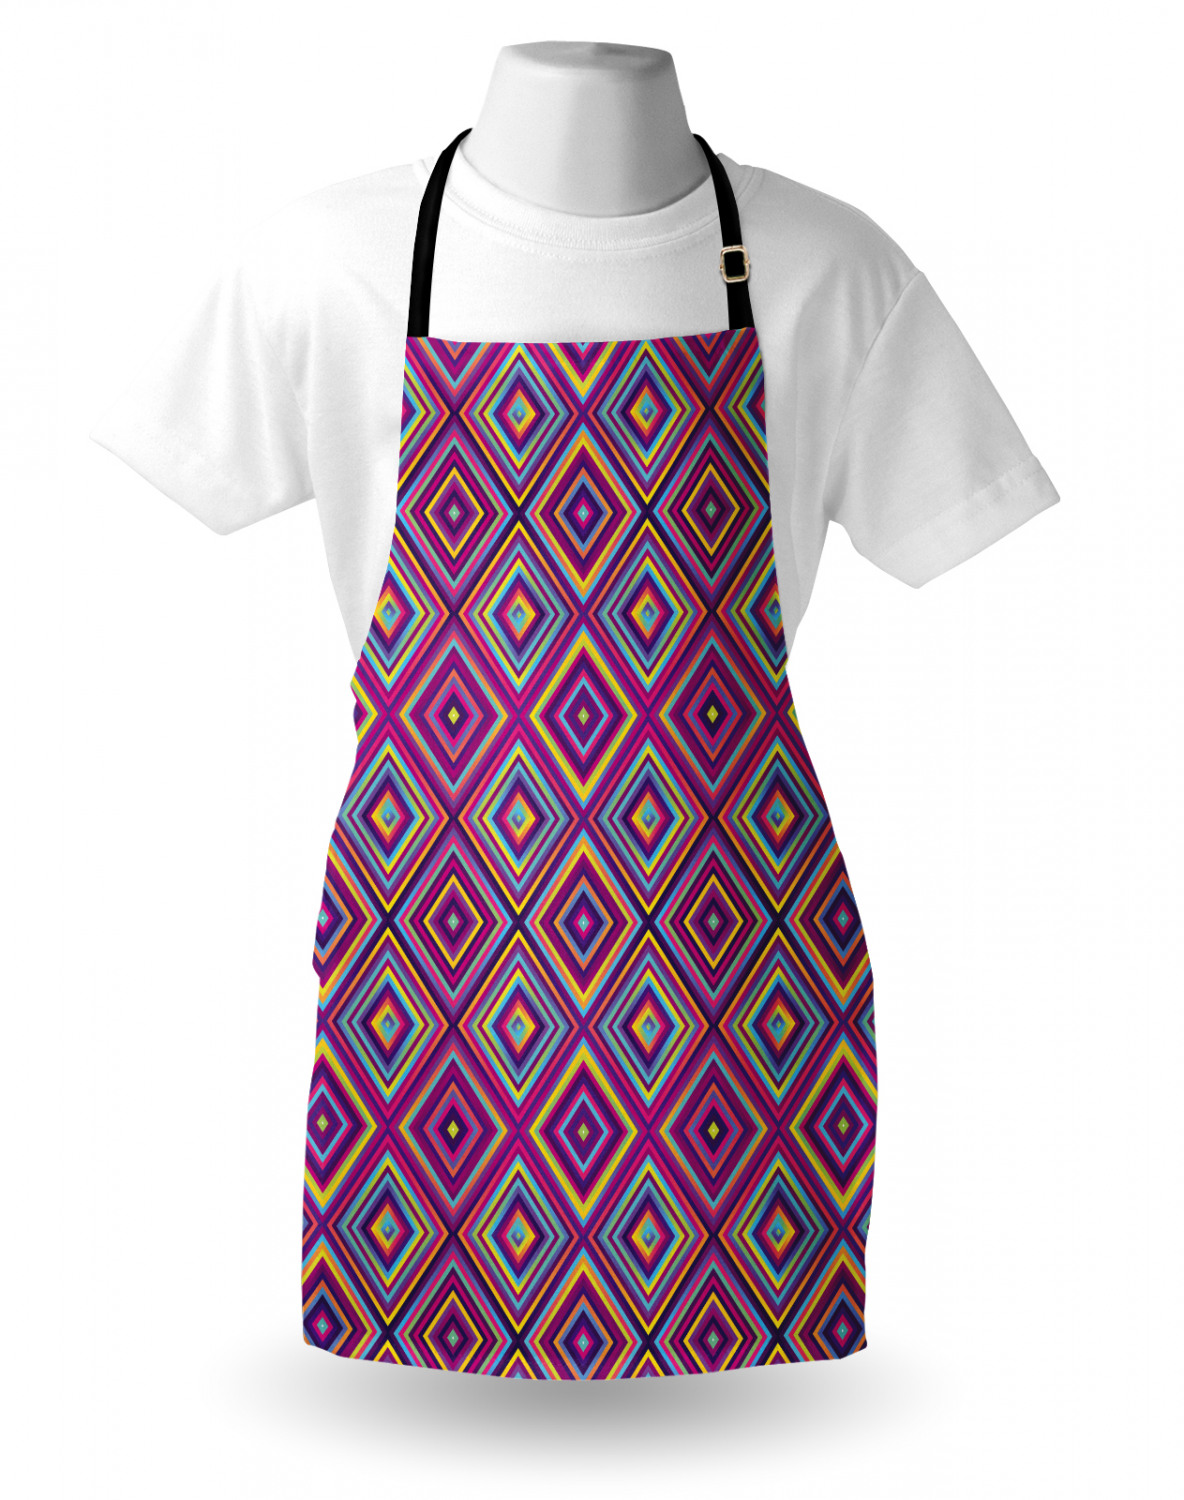 Ambesonne-Outdoor-Use-Apron-with-Adjustable-Neck-Strap-for-Gardening-and-Cooking miniatura 42